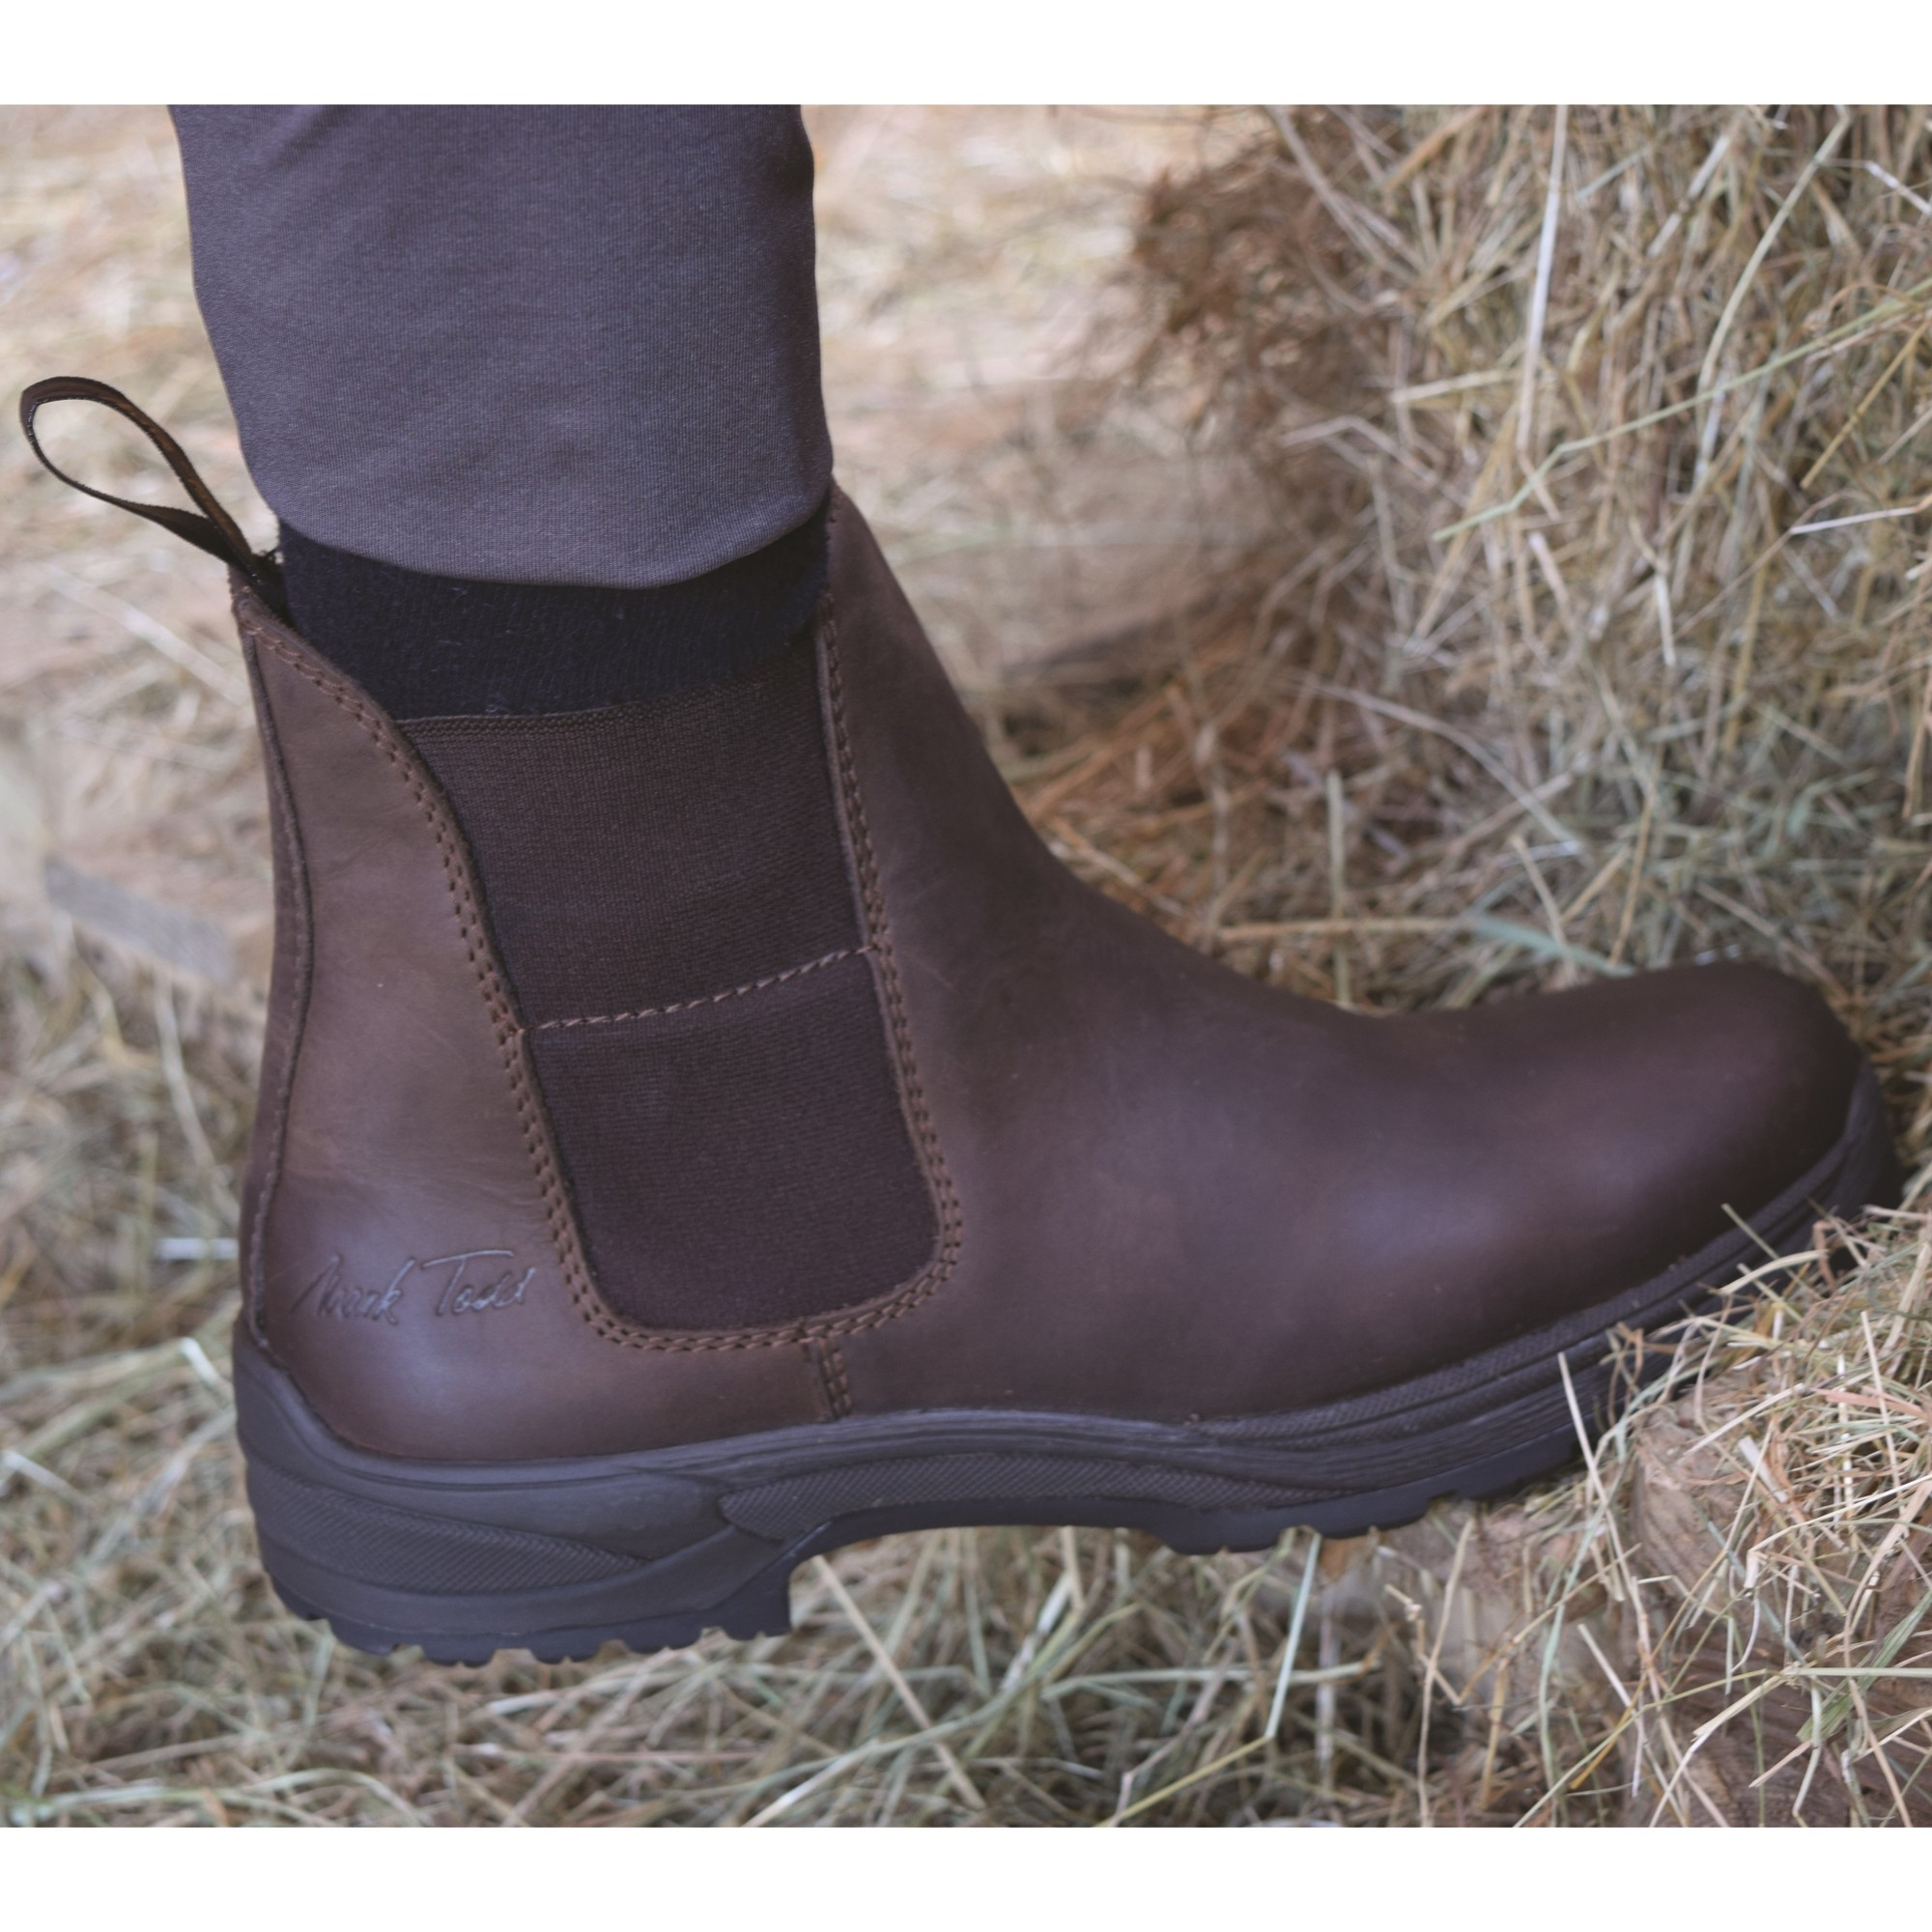 Brown All Sizes Mark Todd Synthetic Zip Back Unisex Boots Jodhpur